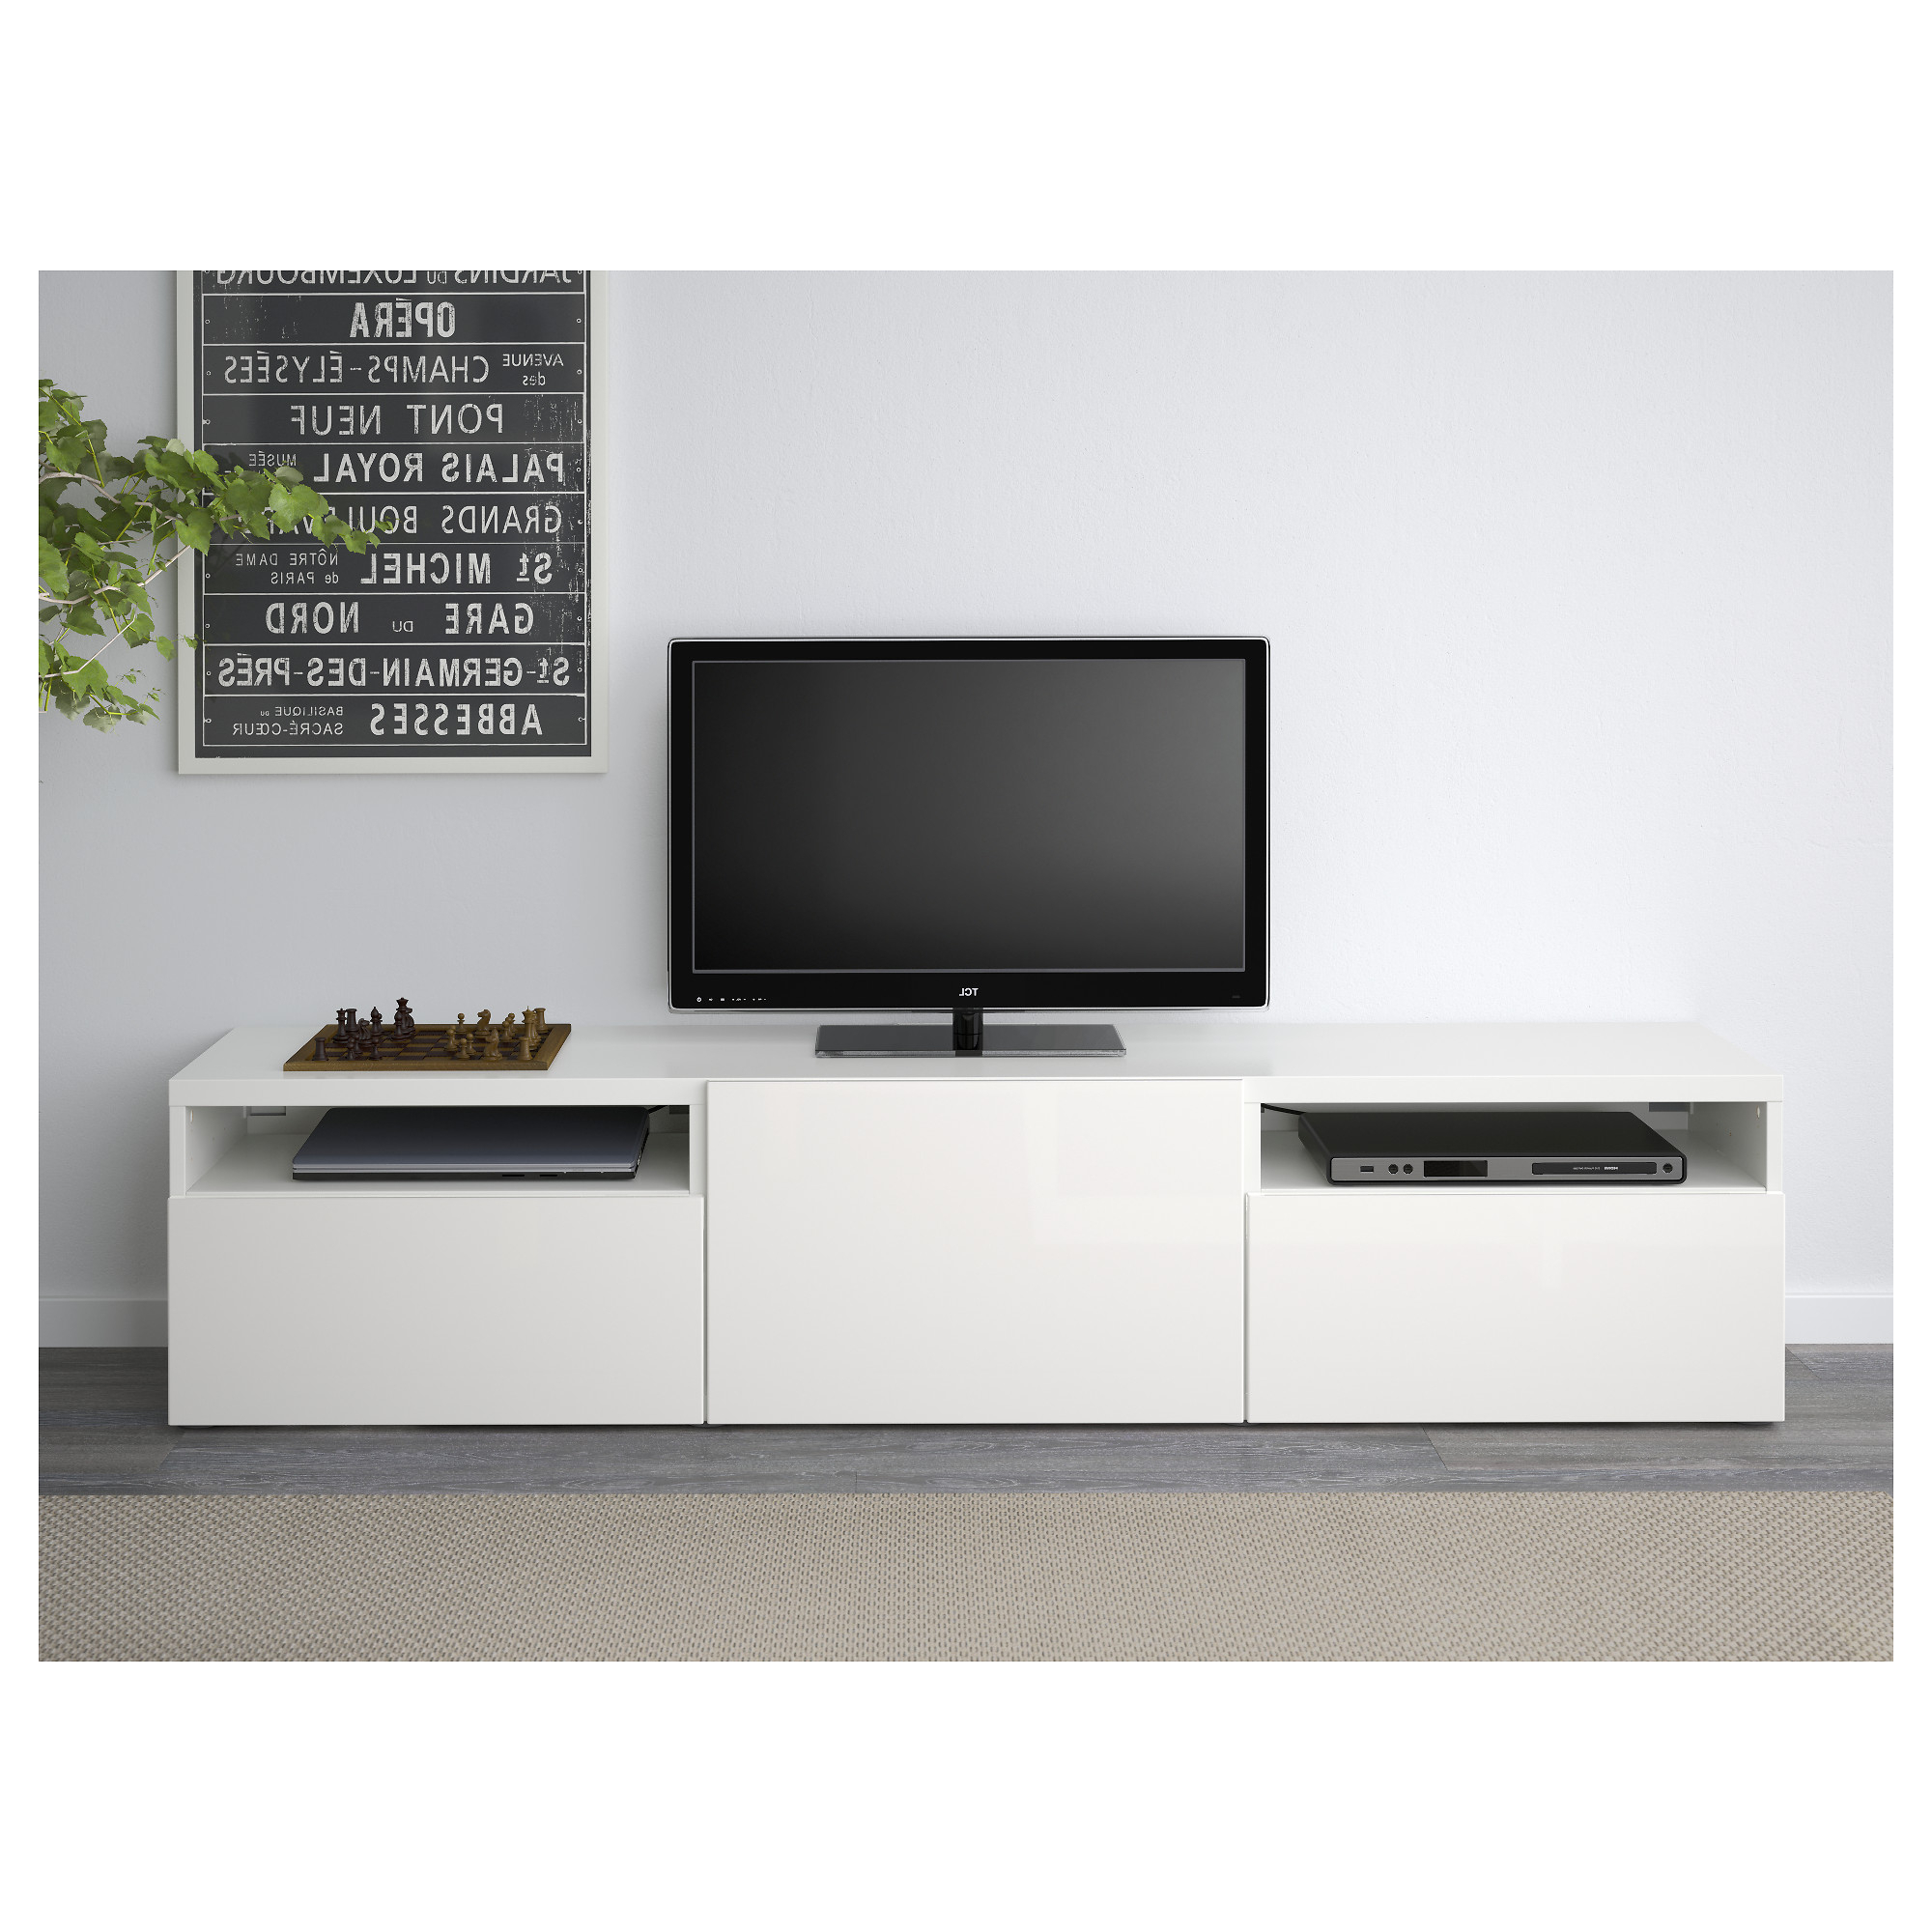 Widely Used Bench Tv Stands Inside Tv Stands Sam's Club Stand Ikea For Small Apartments Cabinet With (View 18 of 20)